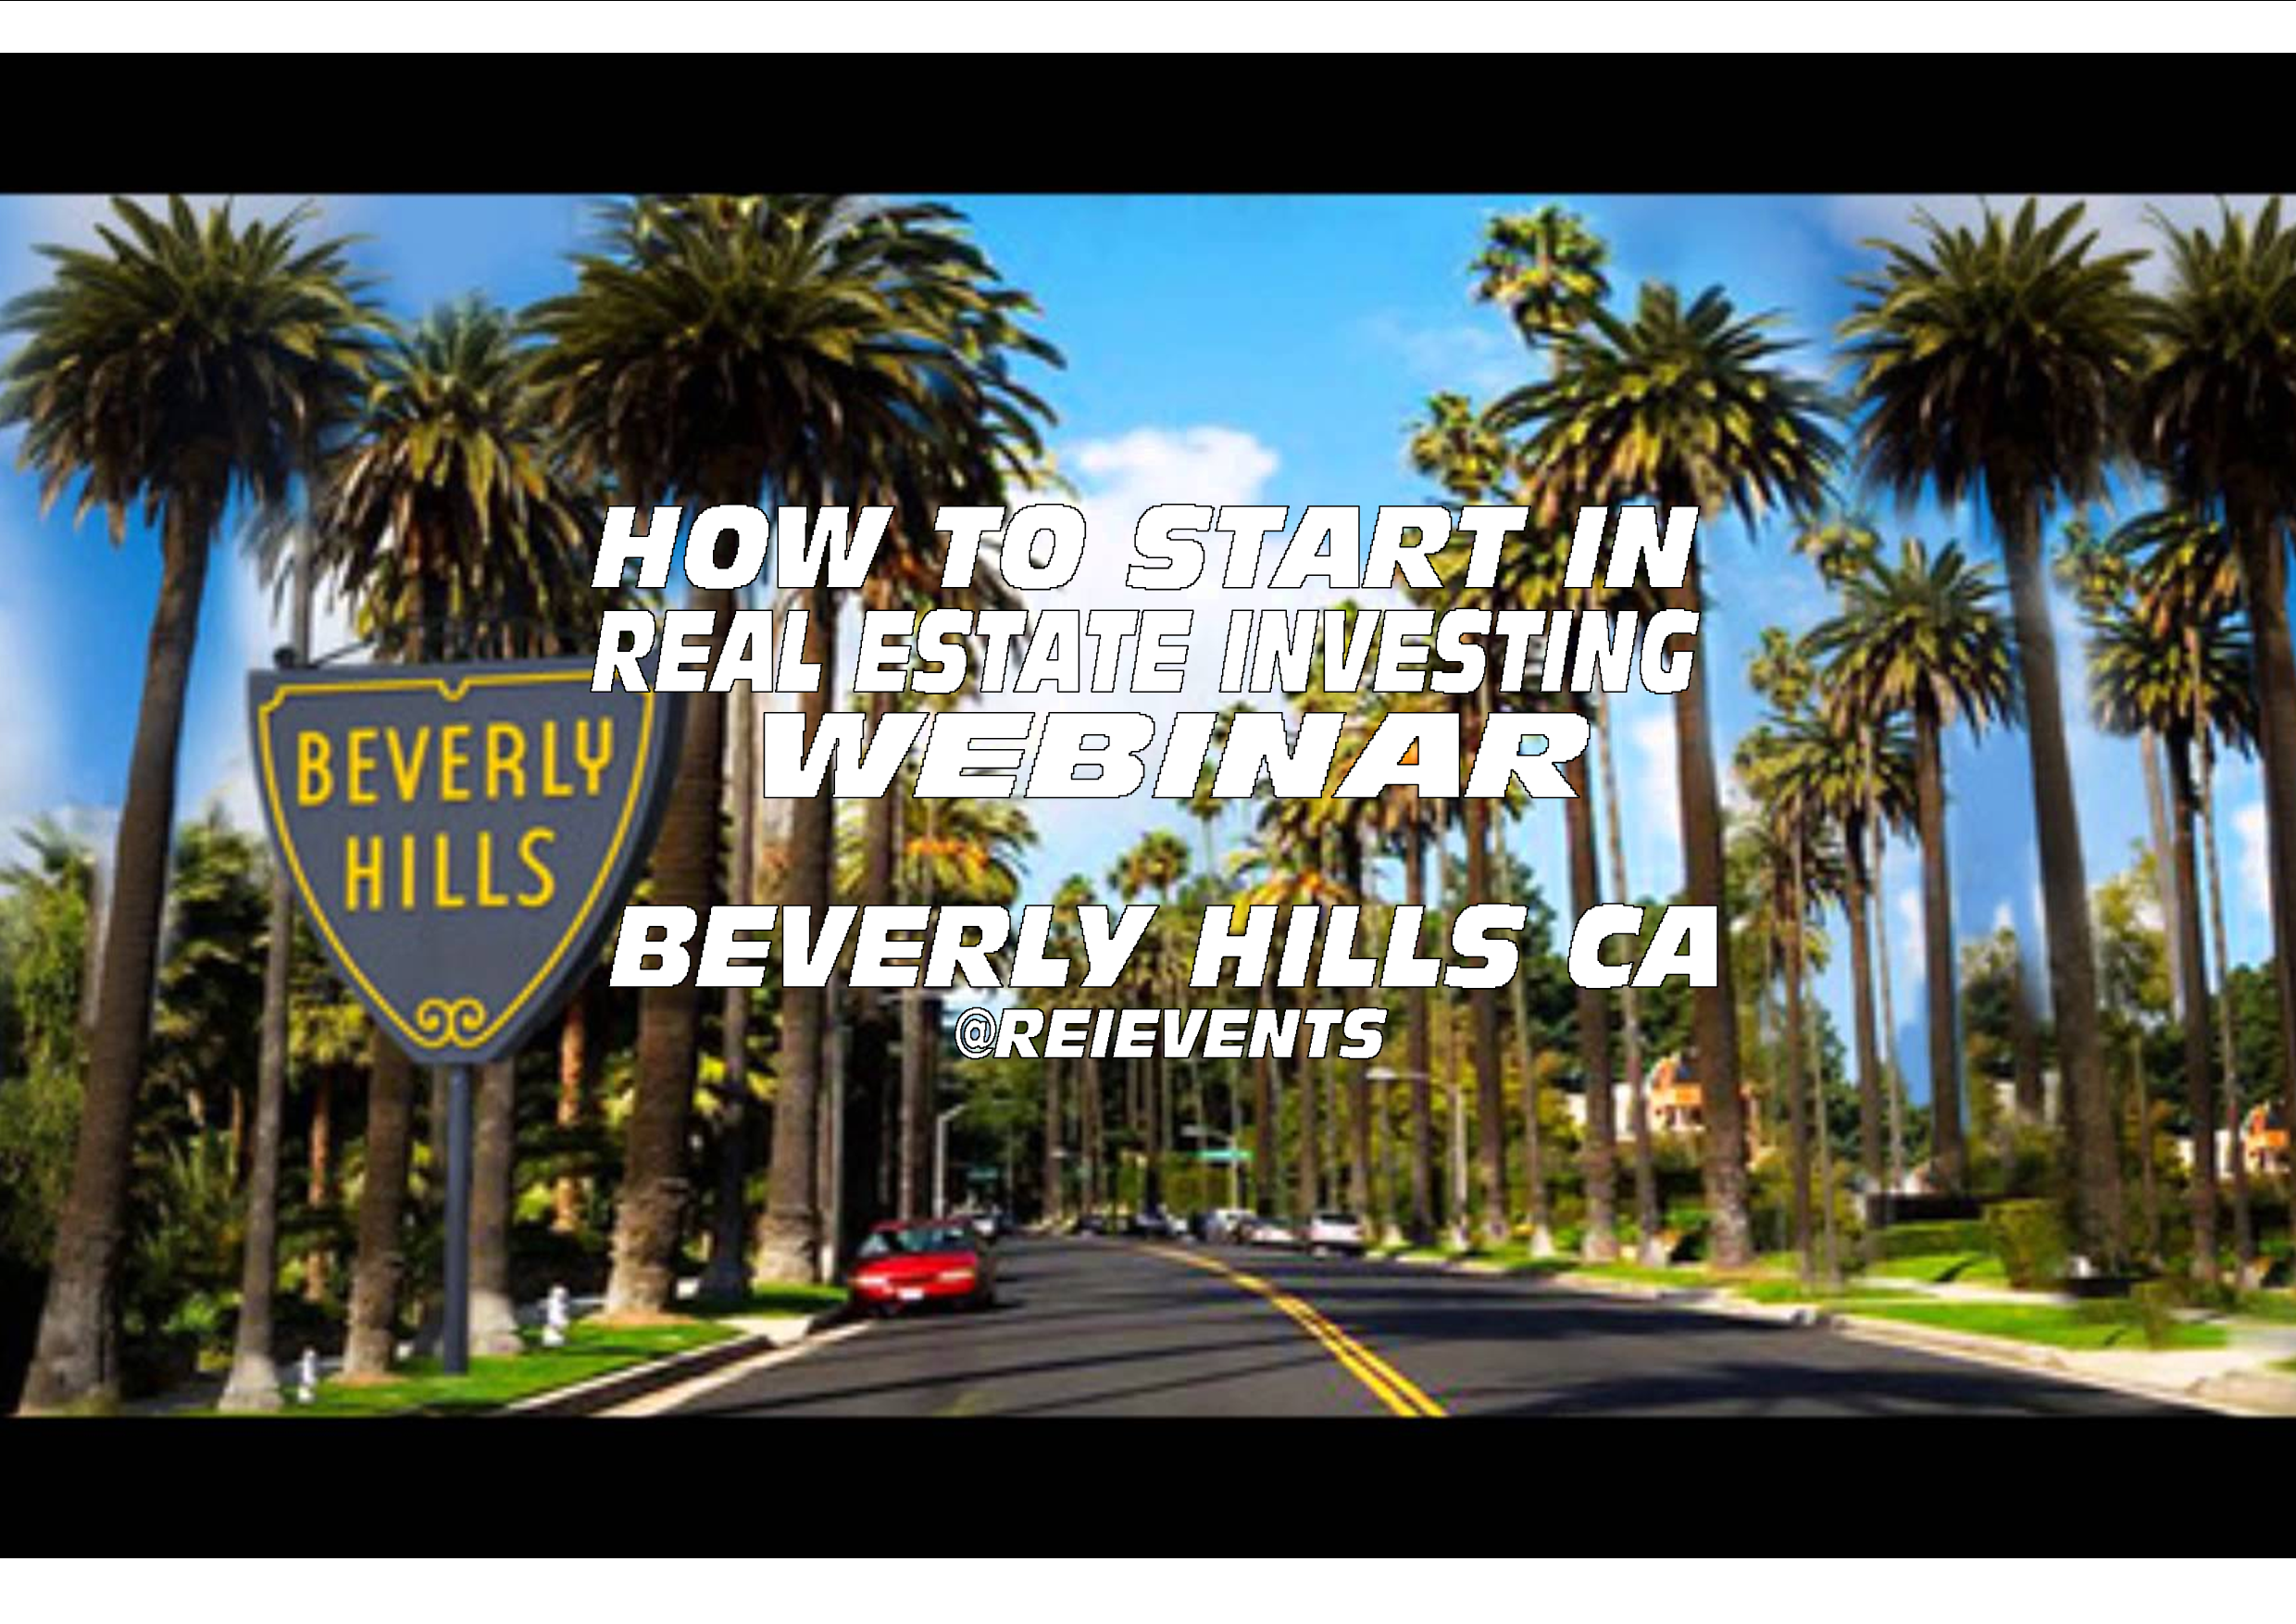 HOW TO START IN REAL ESTATE INVESTING - WEBINAR - Beverly Hills, CA